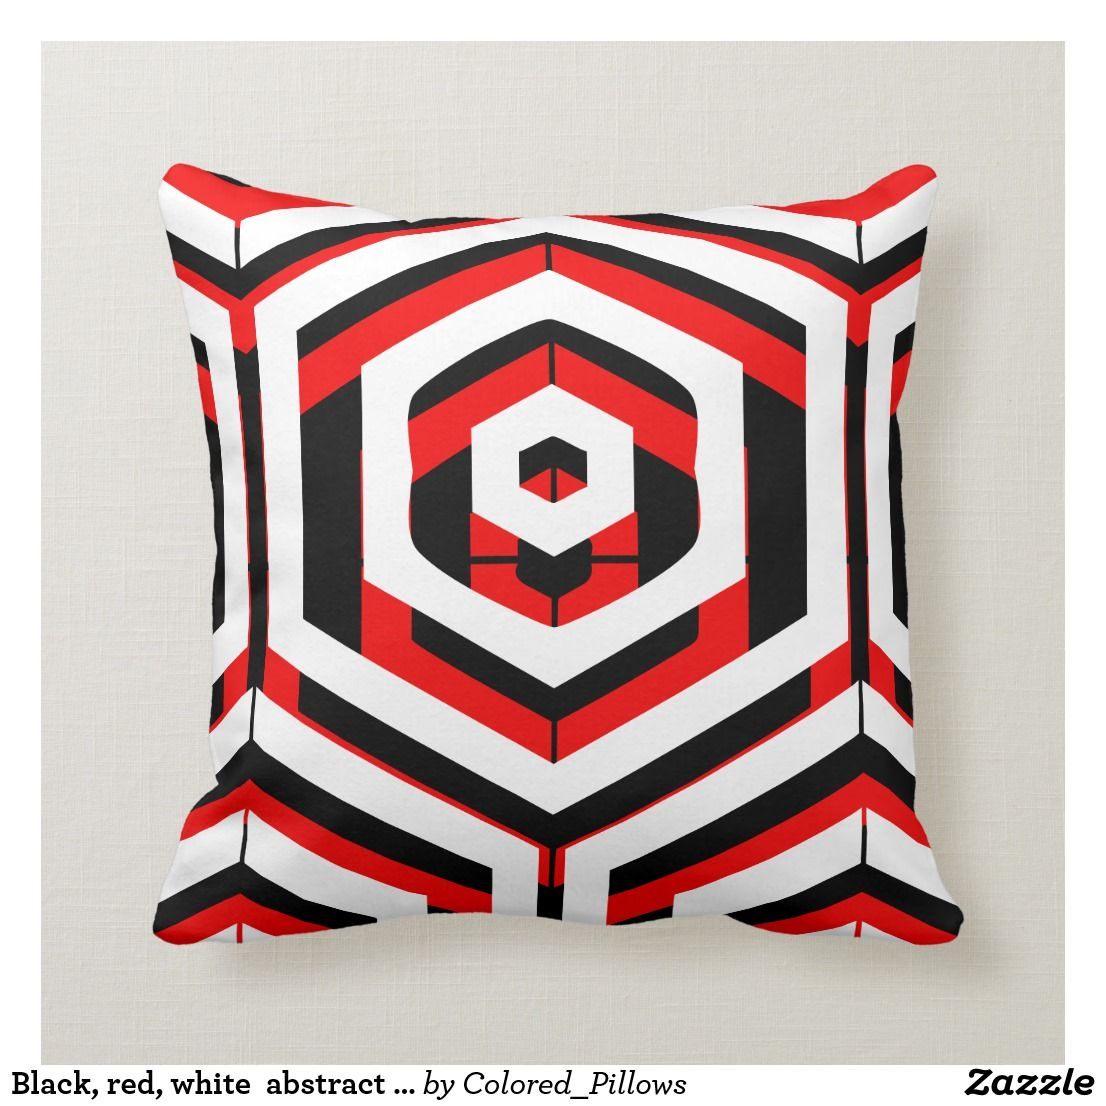 Black Red White Abstract Pattern Solid Back Modern Pillows Black Decorative Pillows Decorative Pillows